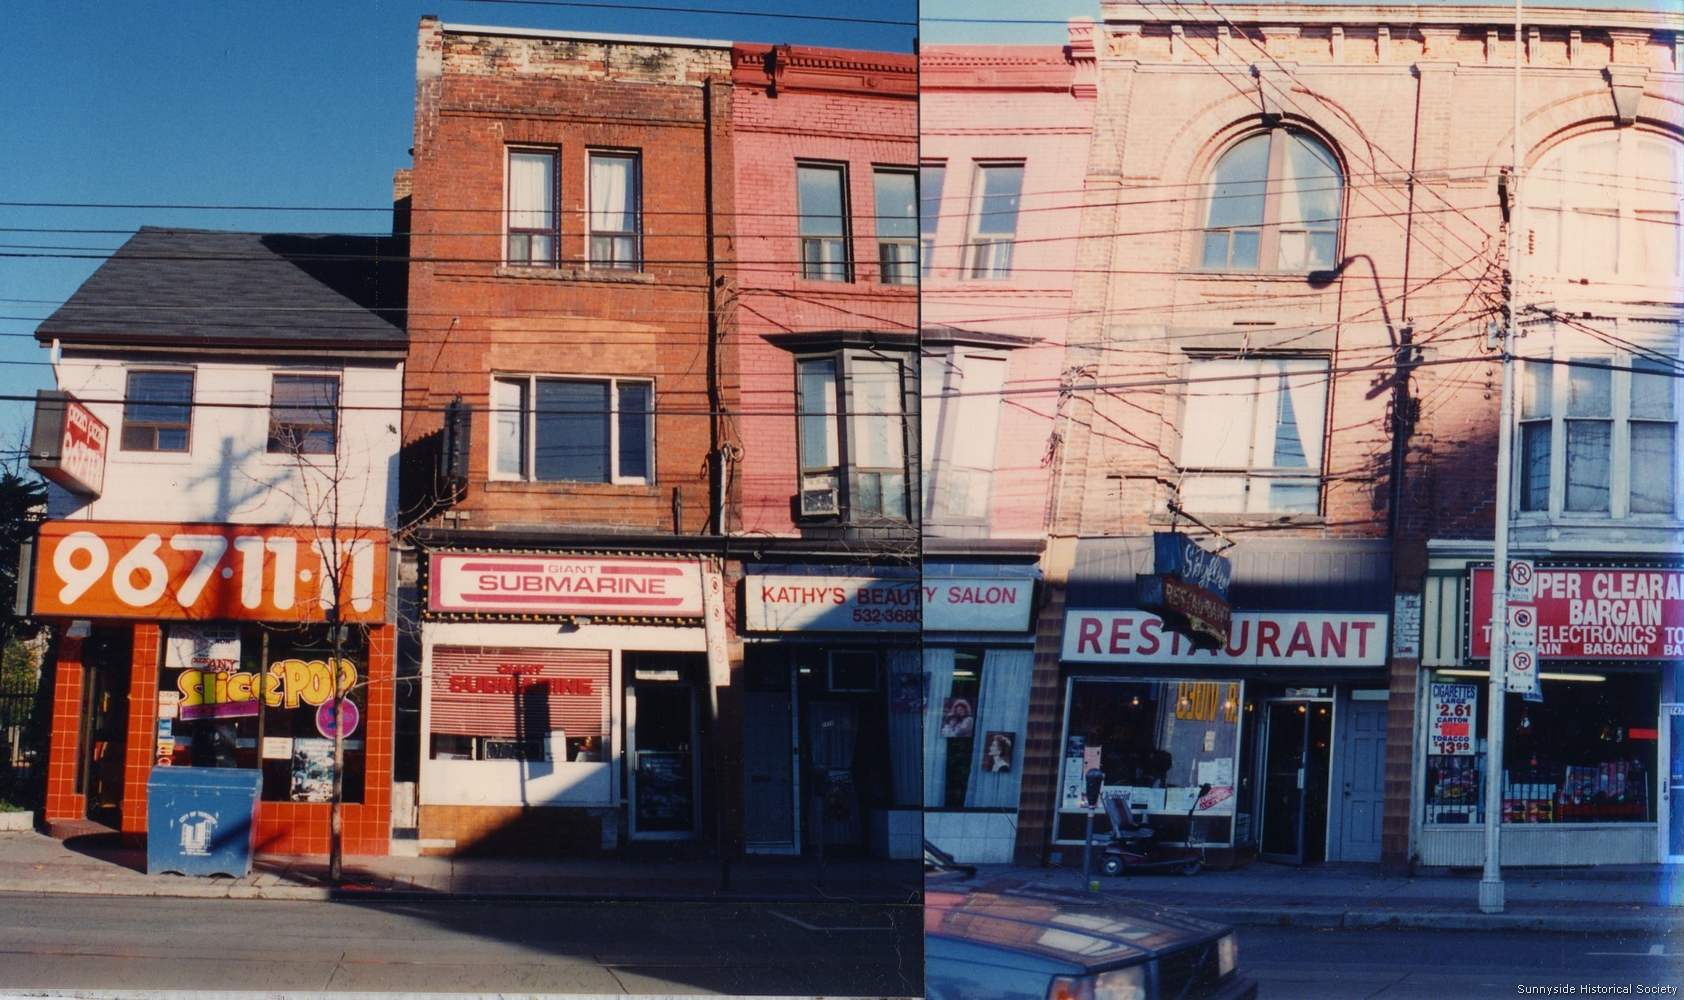 1996 Photo Of 1426 Queen St W Parkdale BIA